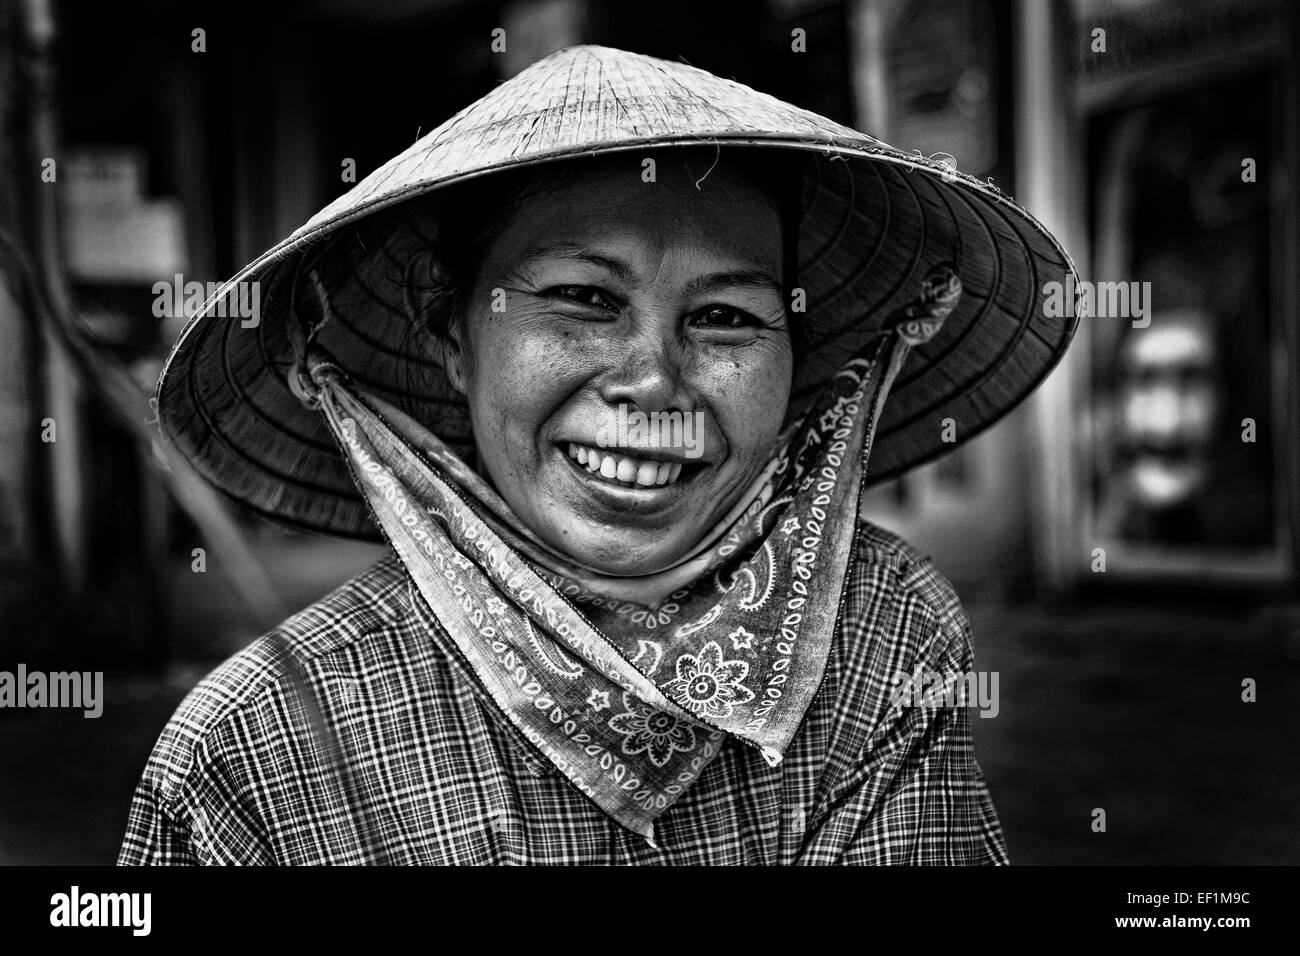 Stock Photo - Street Vendor in Ho Chi <b>Minh City</b>, Vietnam, Asai - street-vendor-in-ho-chi-minh-city-vietnam-asai-EF1M9C